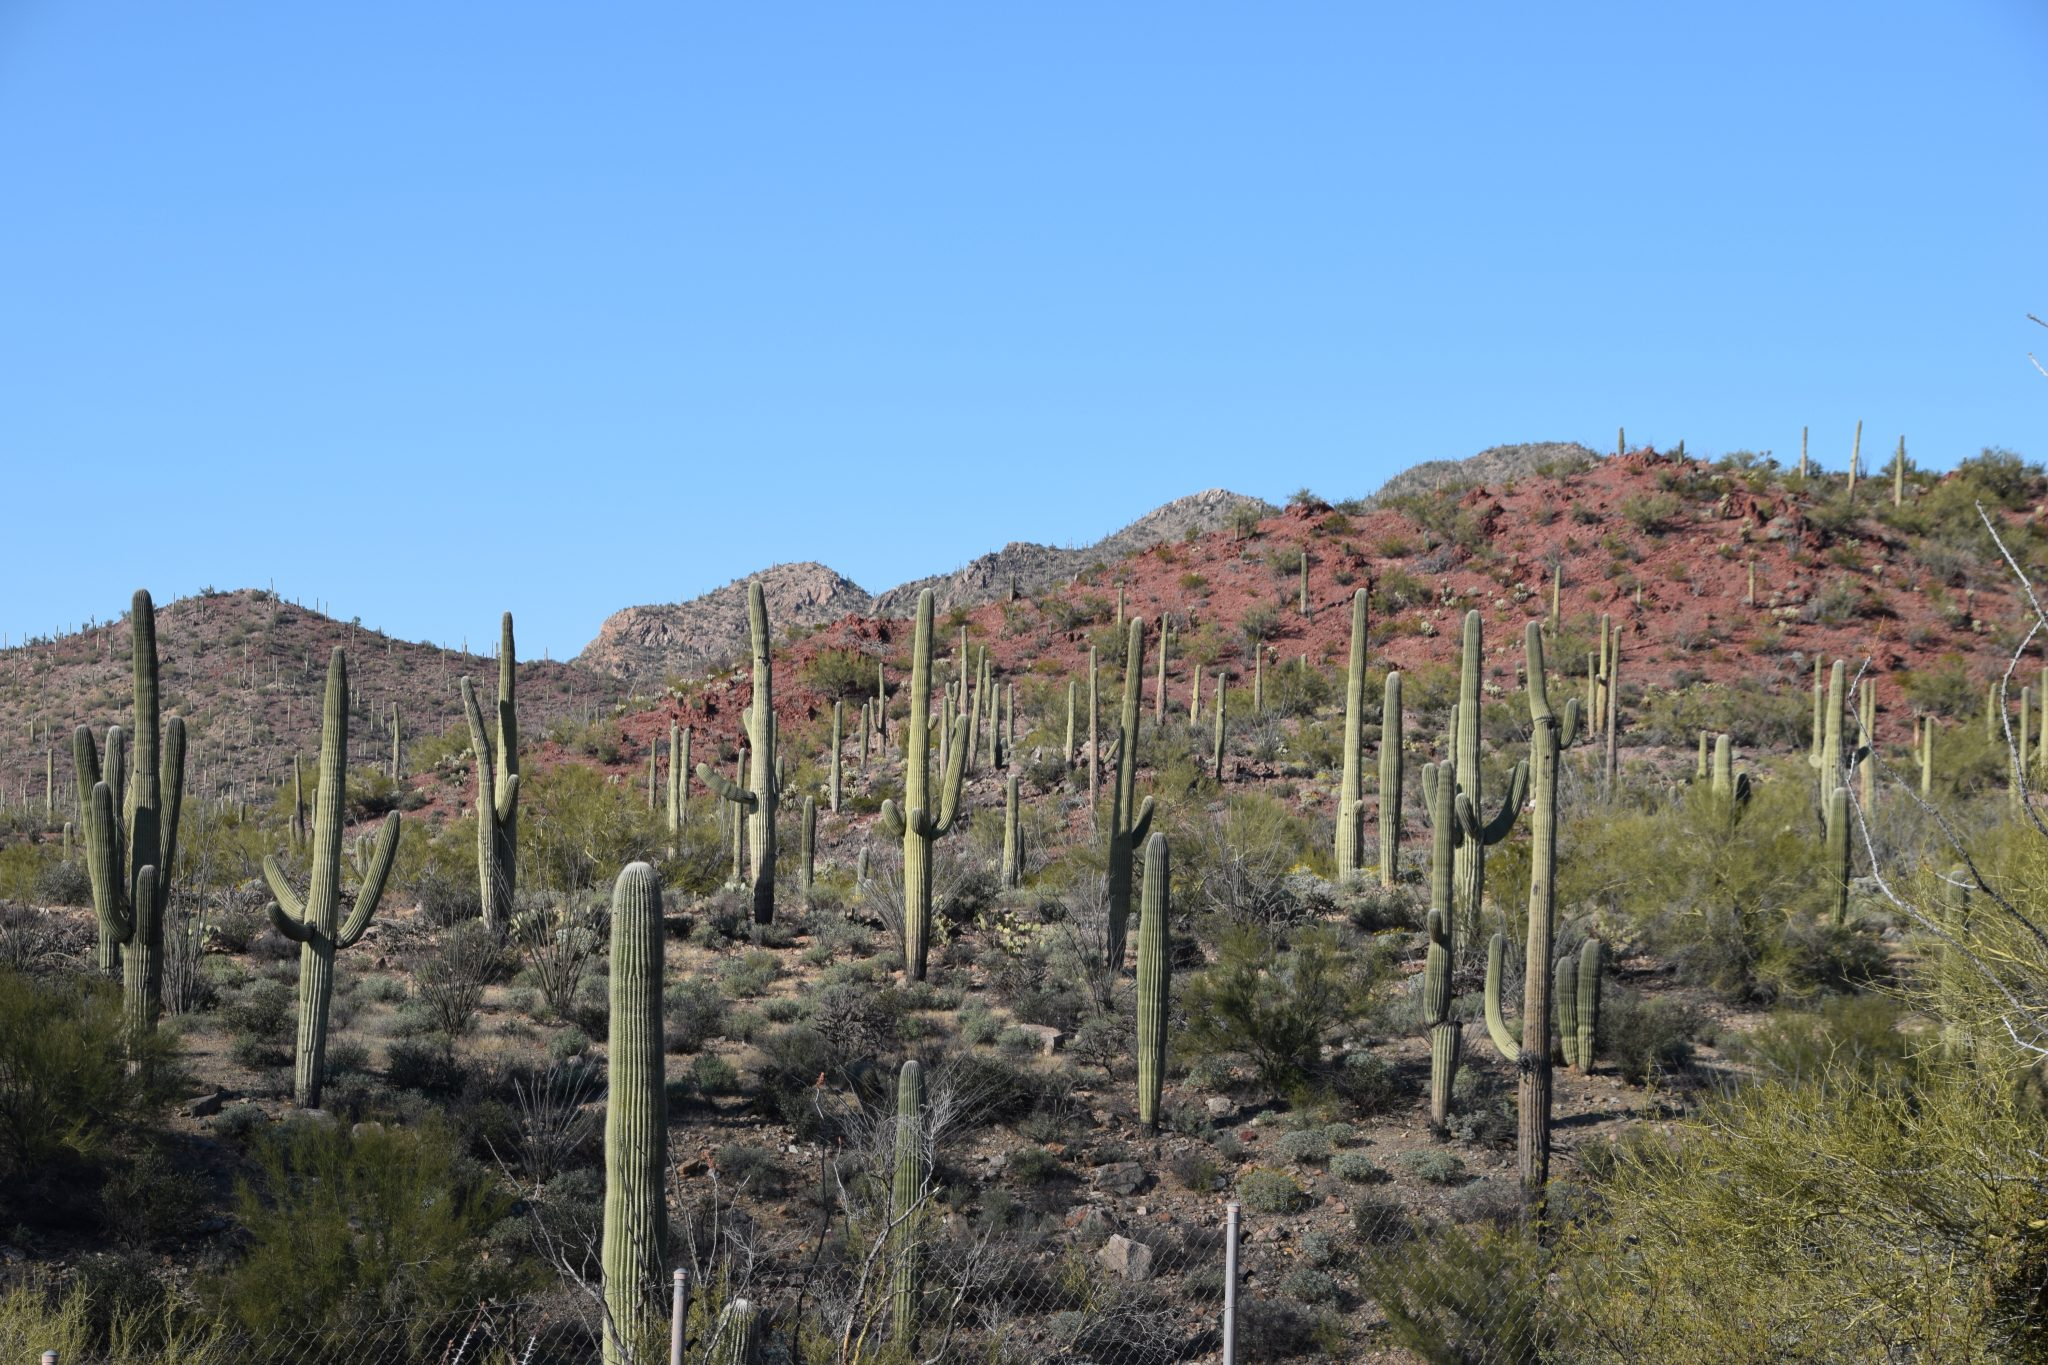 Rocky cactus covered landscape in Tucson, Arizona